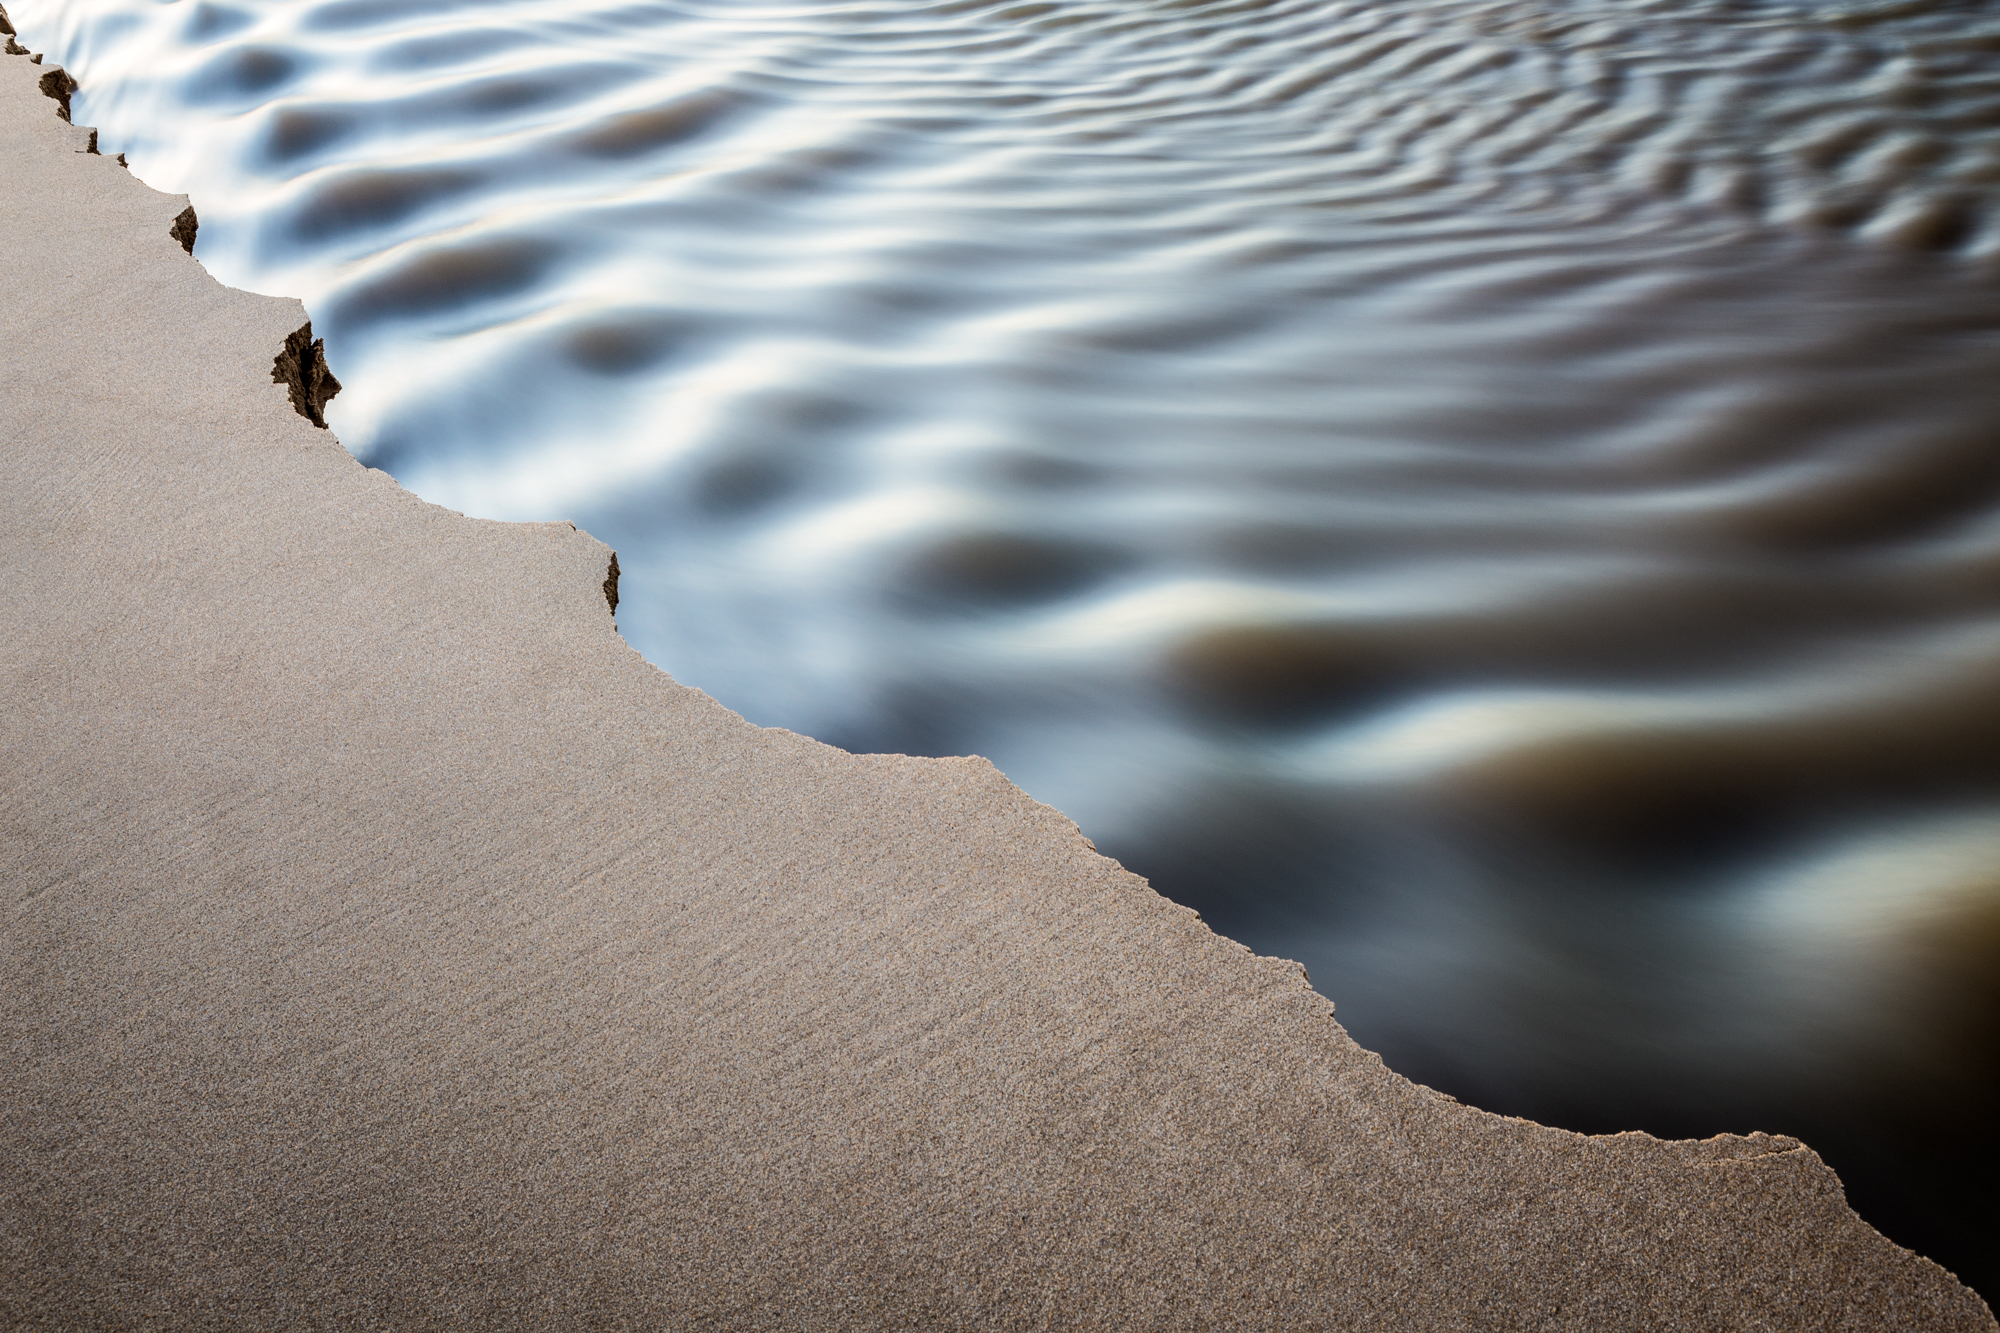 Sand and water abstract.